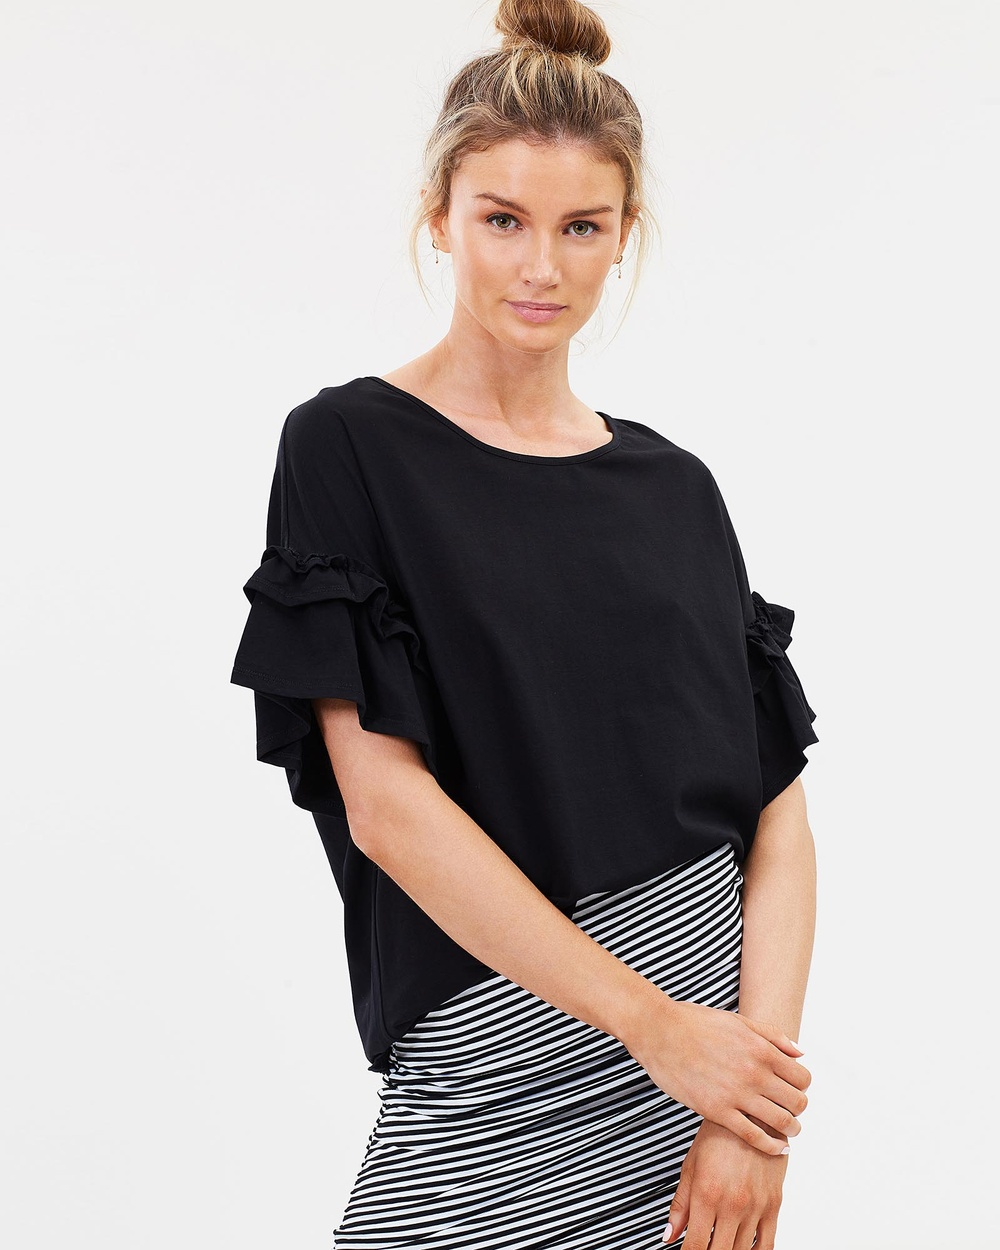 Lincoln St The Frill Cuff Tee Tops Black The Frill Cuff Tee